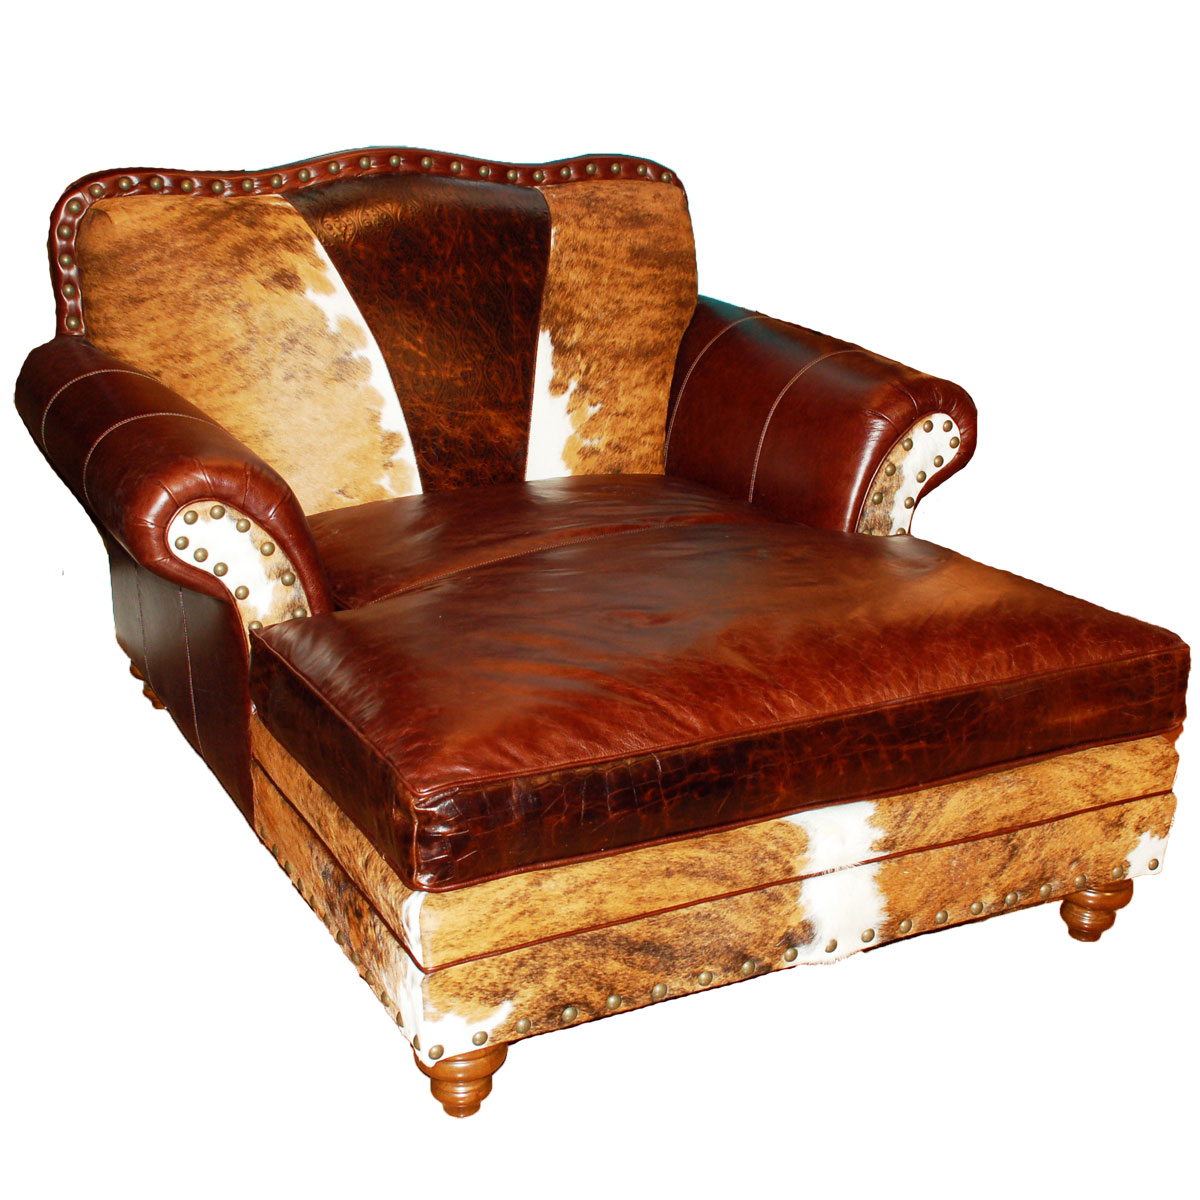 King Chaise Lounge